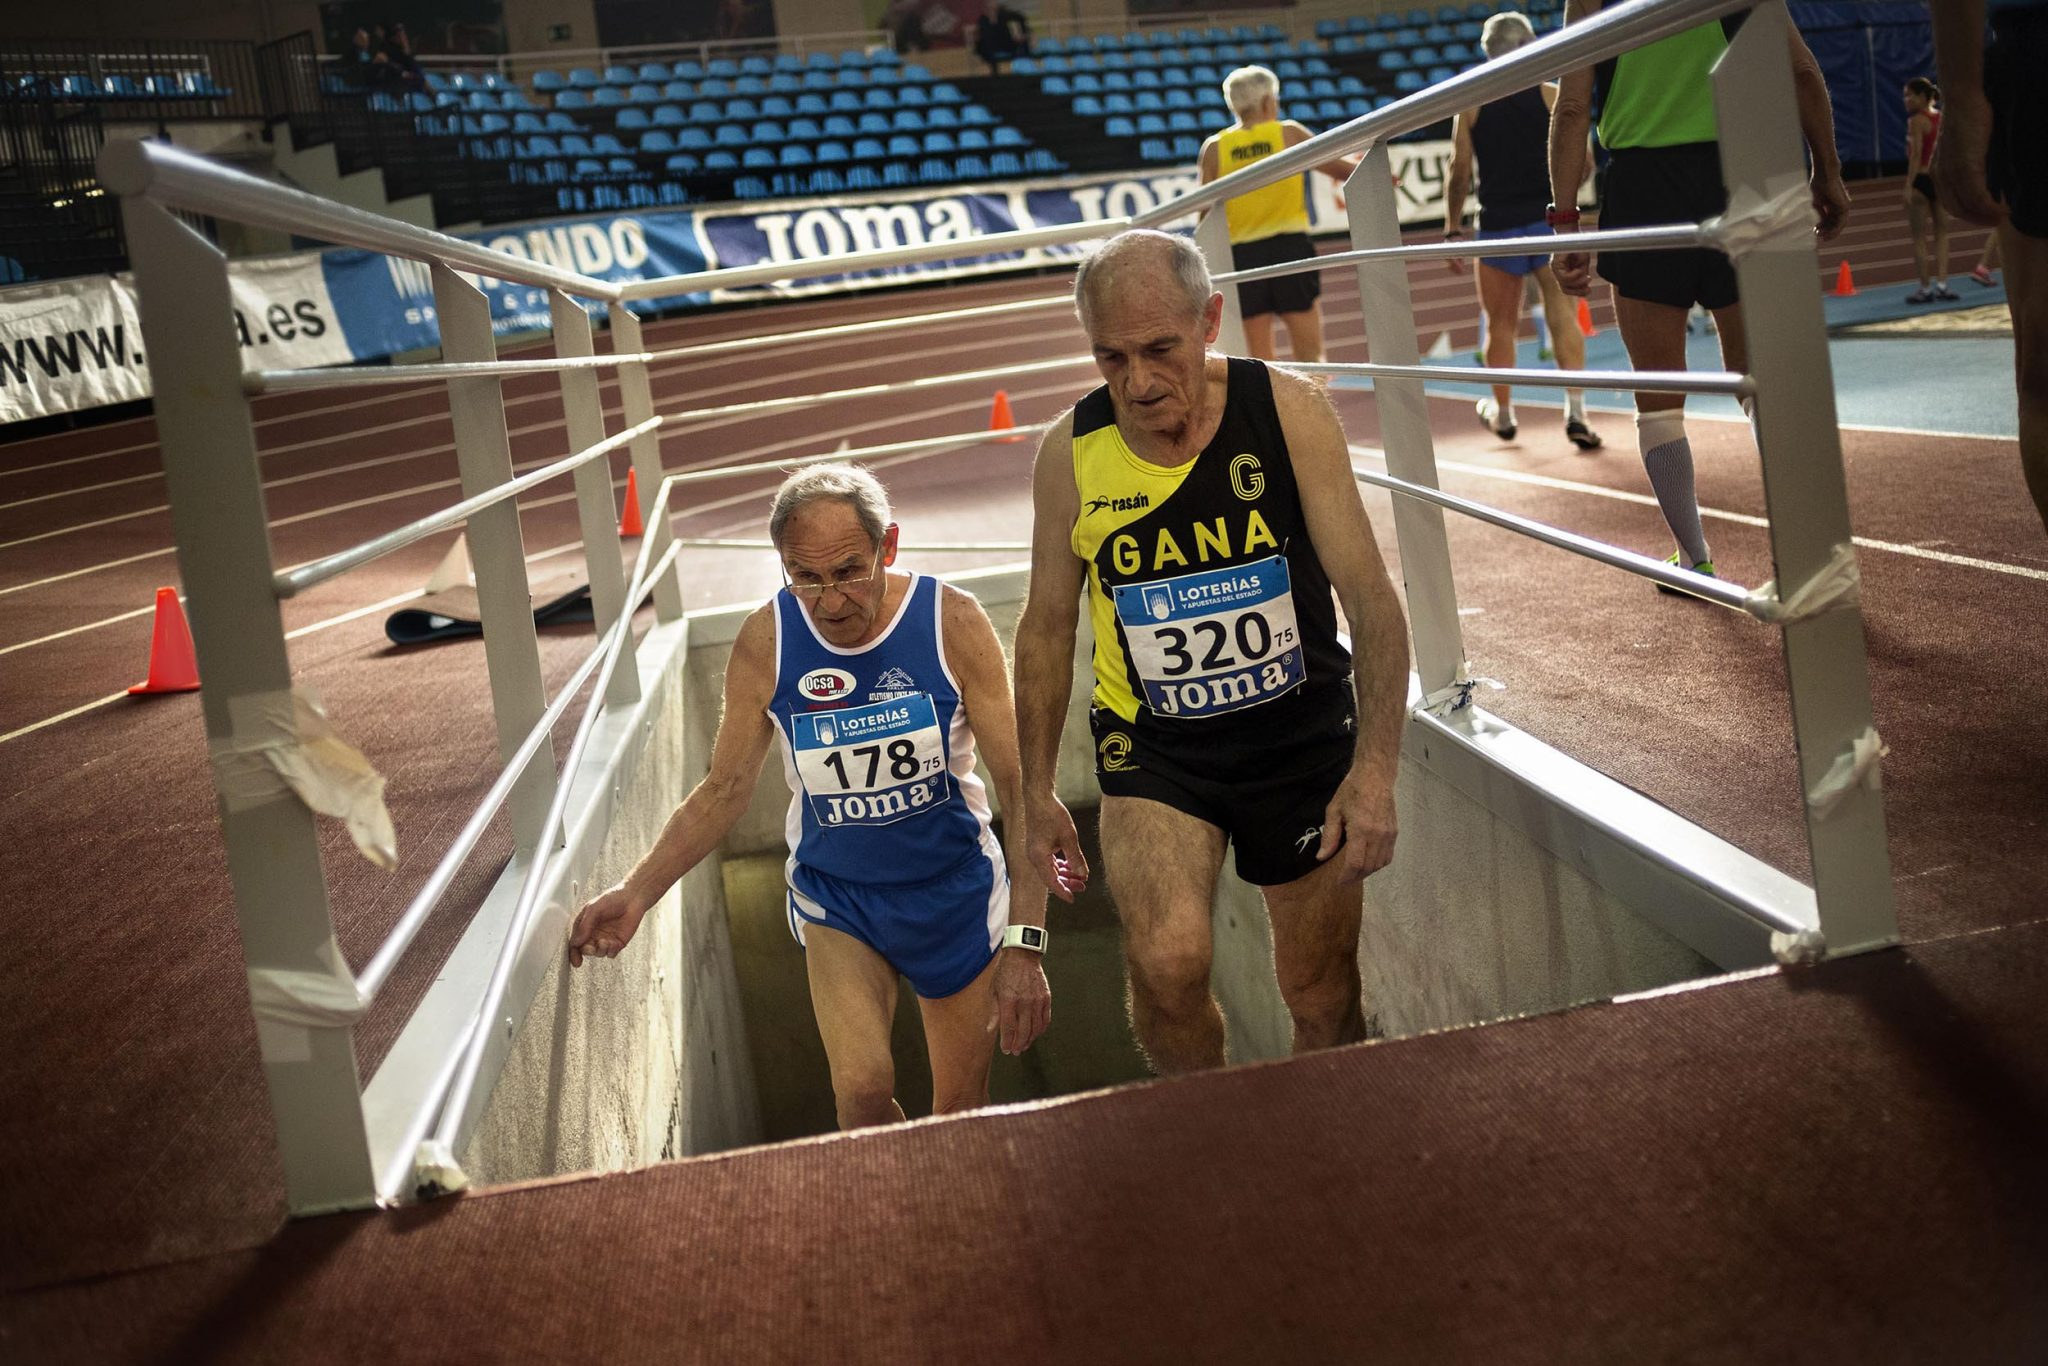 Ángel Cano and another veteran athlete take to the track to compete in the 3000 meters race during the celebration of the Spanish Championships for Veteran Athletics at the Polideportivo de Gallur (Madrid).